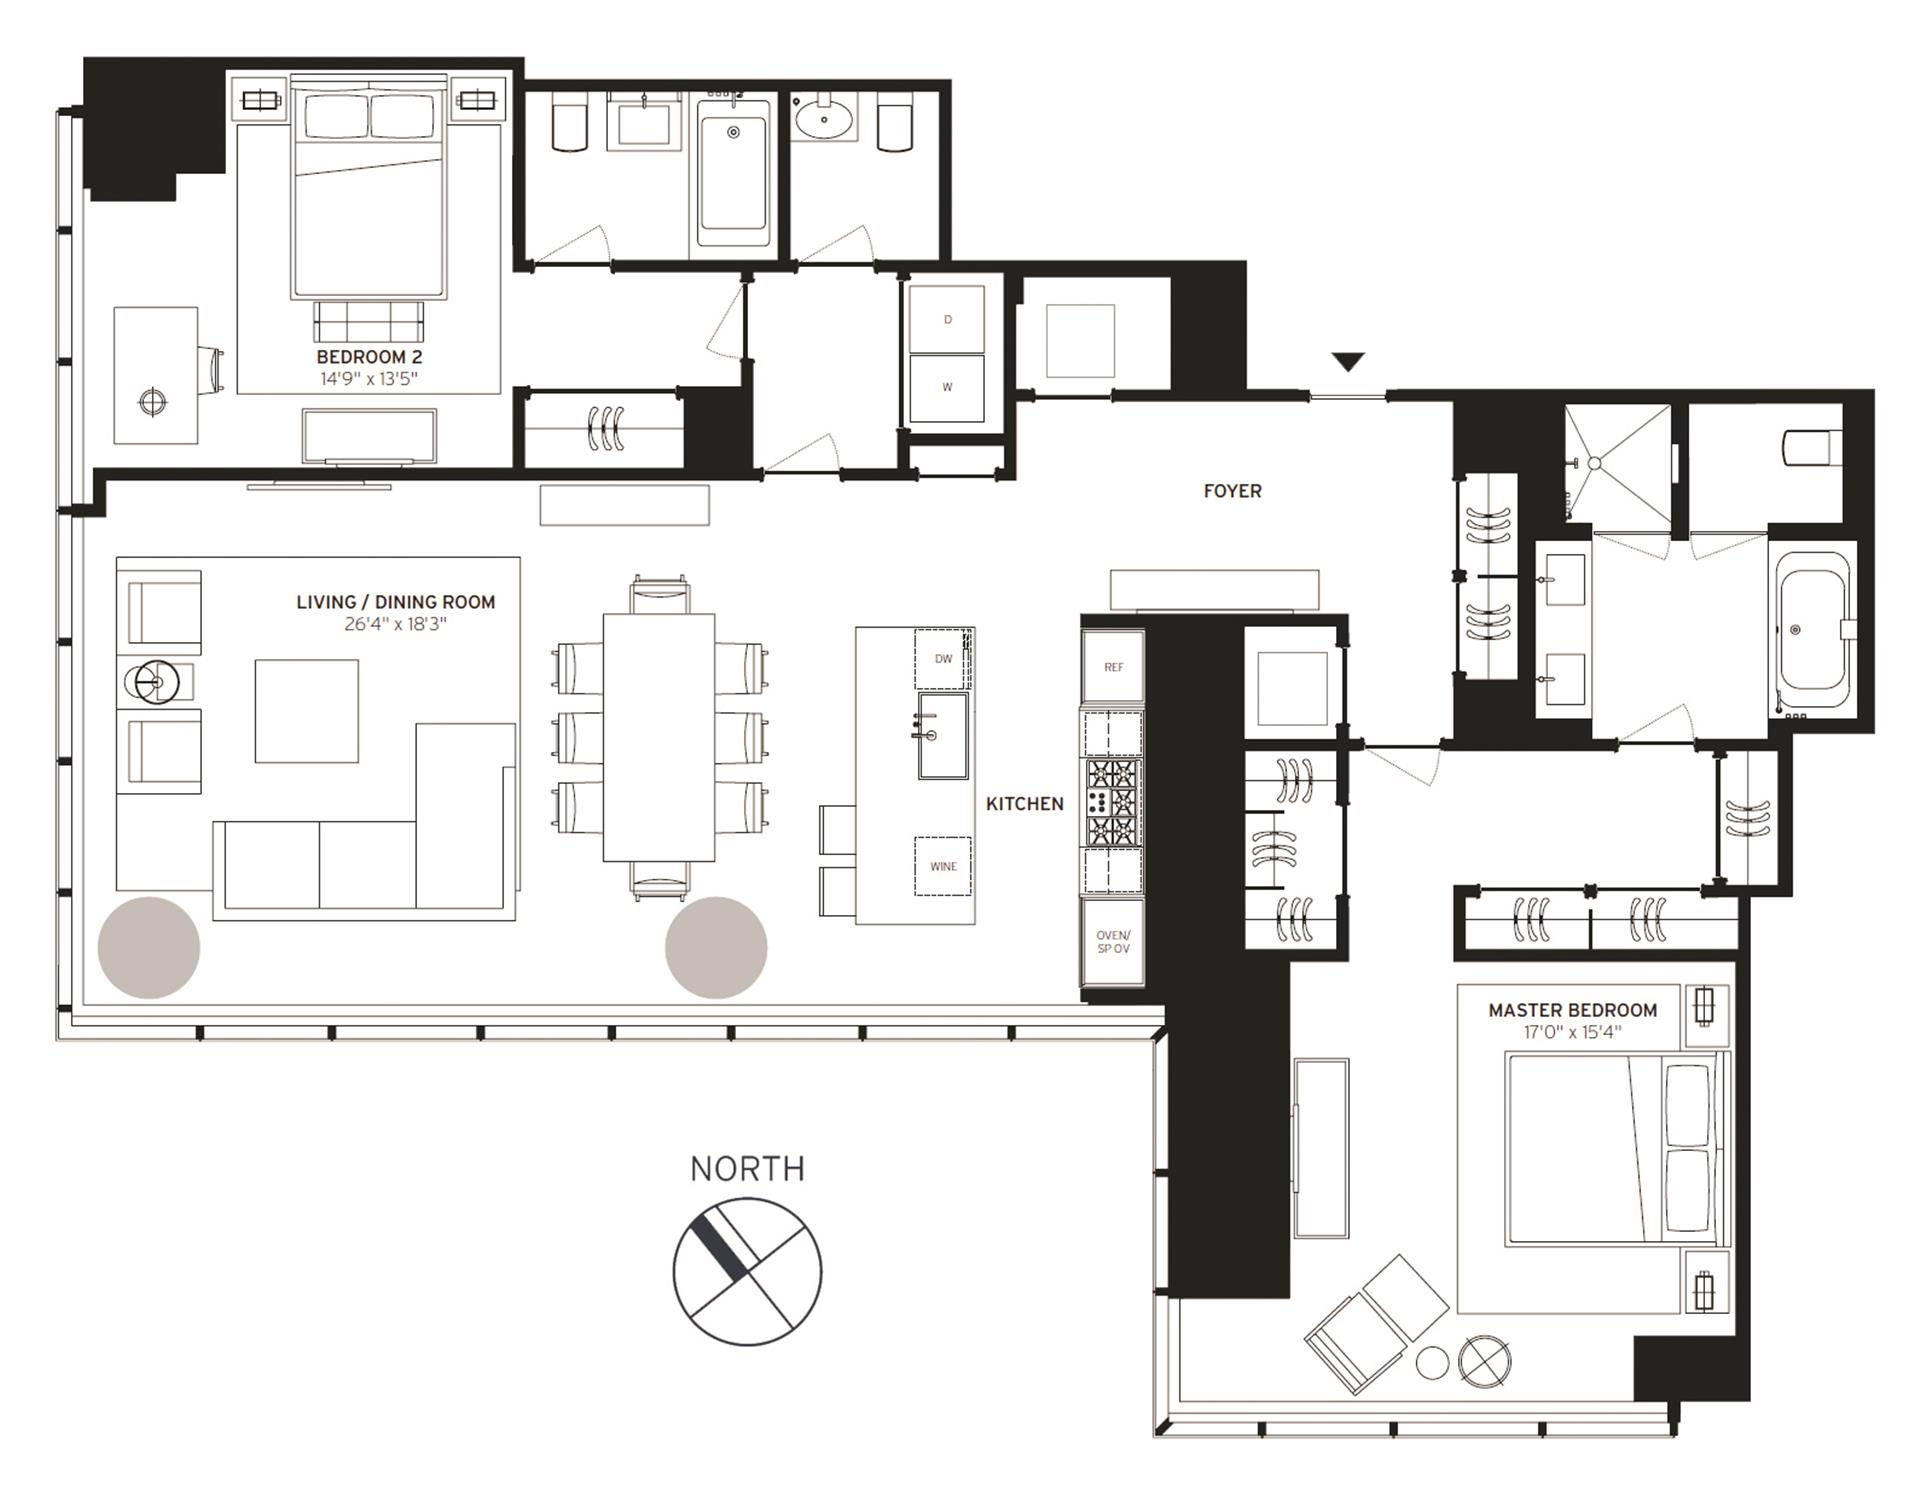 Floor plan of One57, 157 West 57th St, 38C - Central Park South, New York